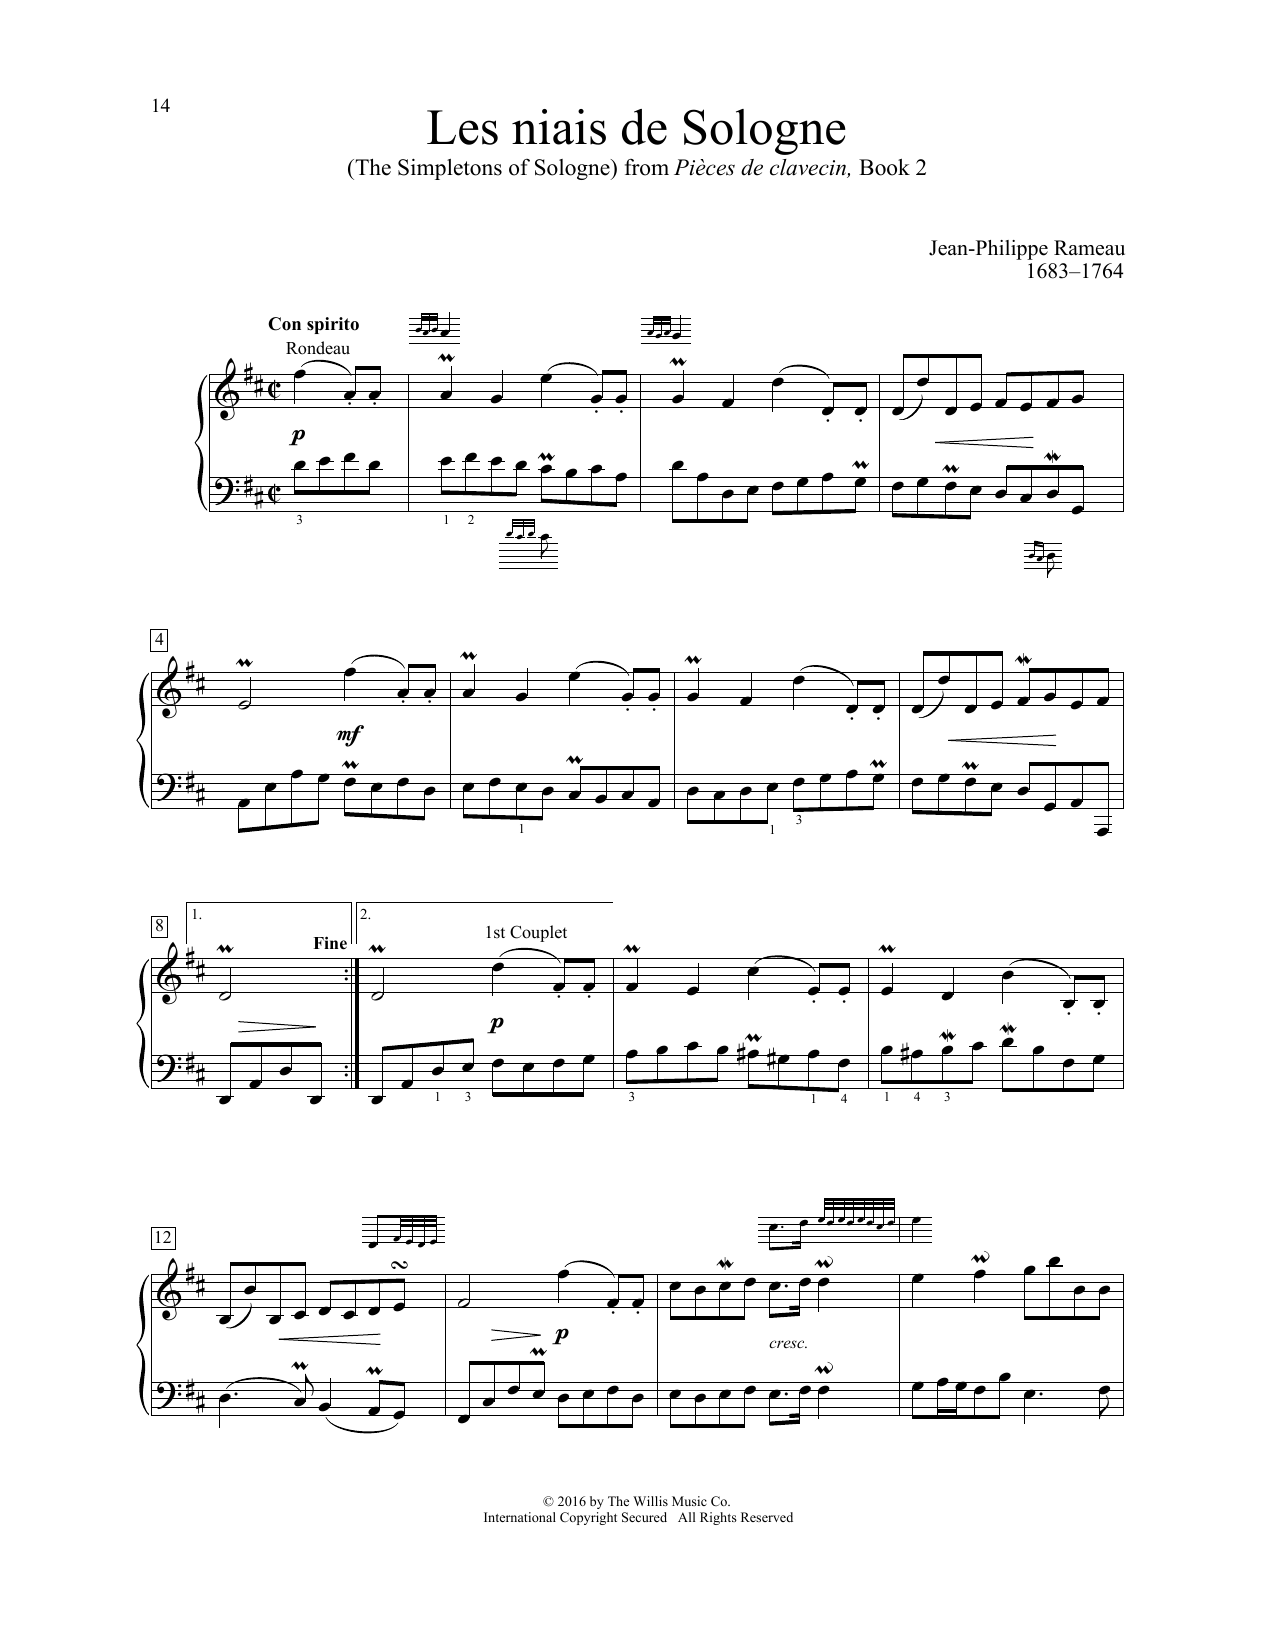 Jean-Philippe Rameau Les niais de Sologne (The Simpletons Of Sologne) sheet music notes and chords. Download Printable PDF.